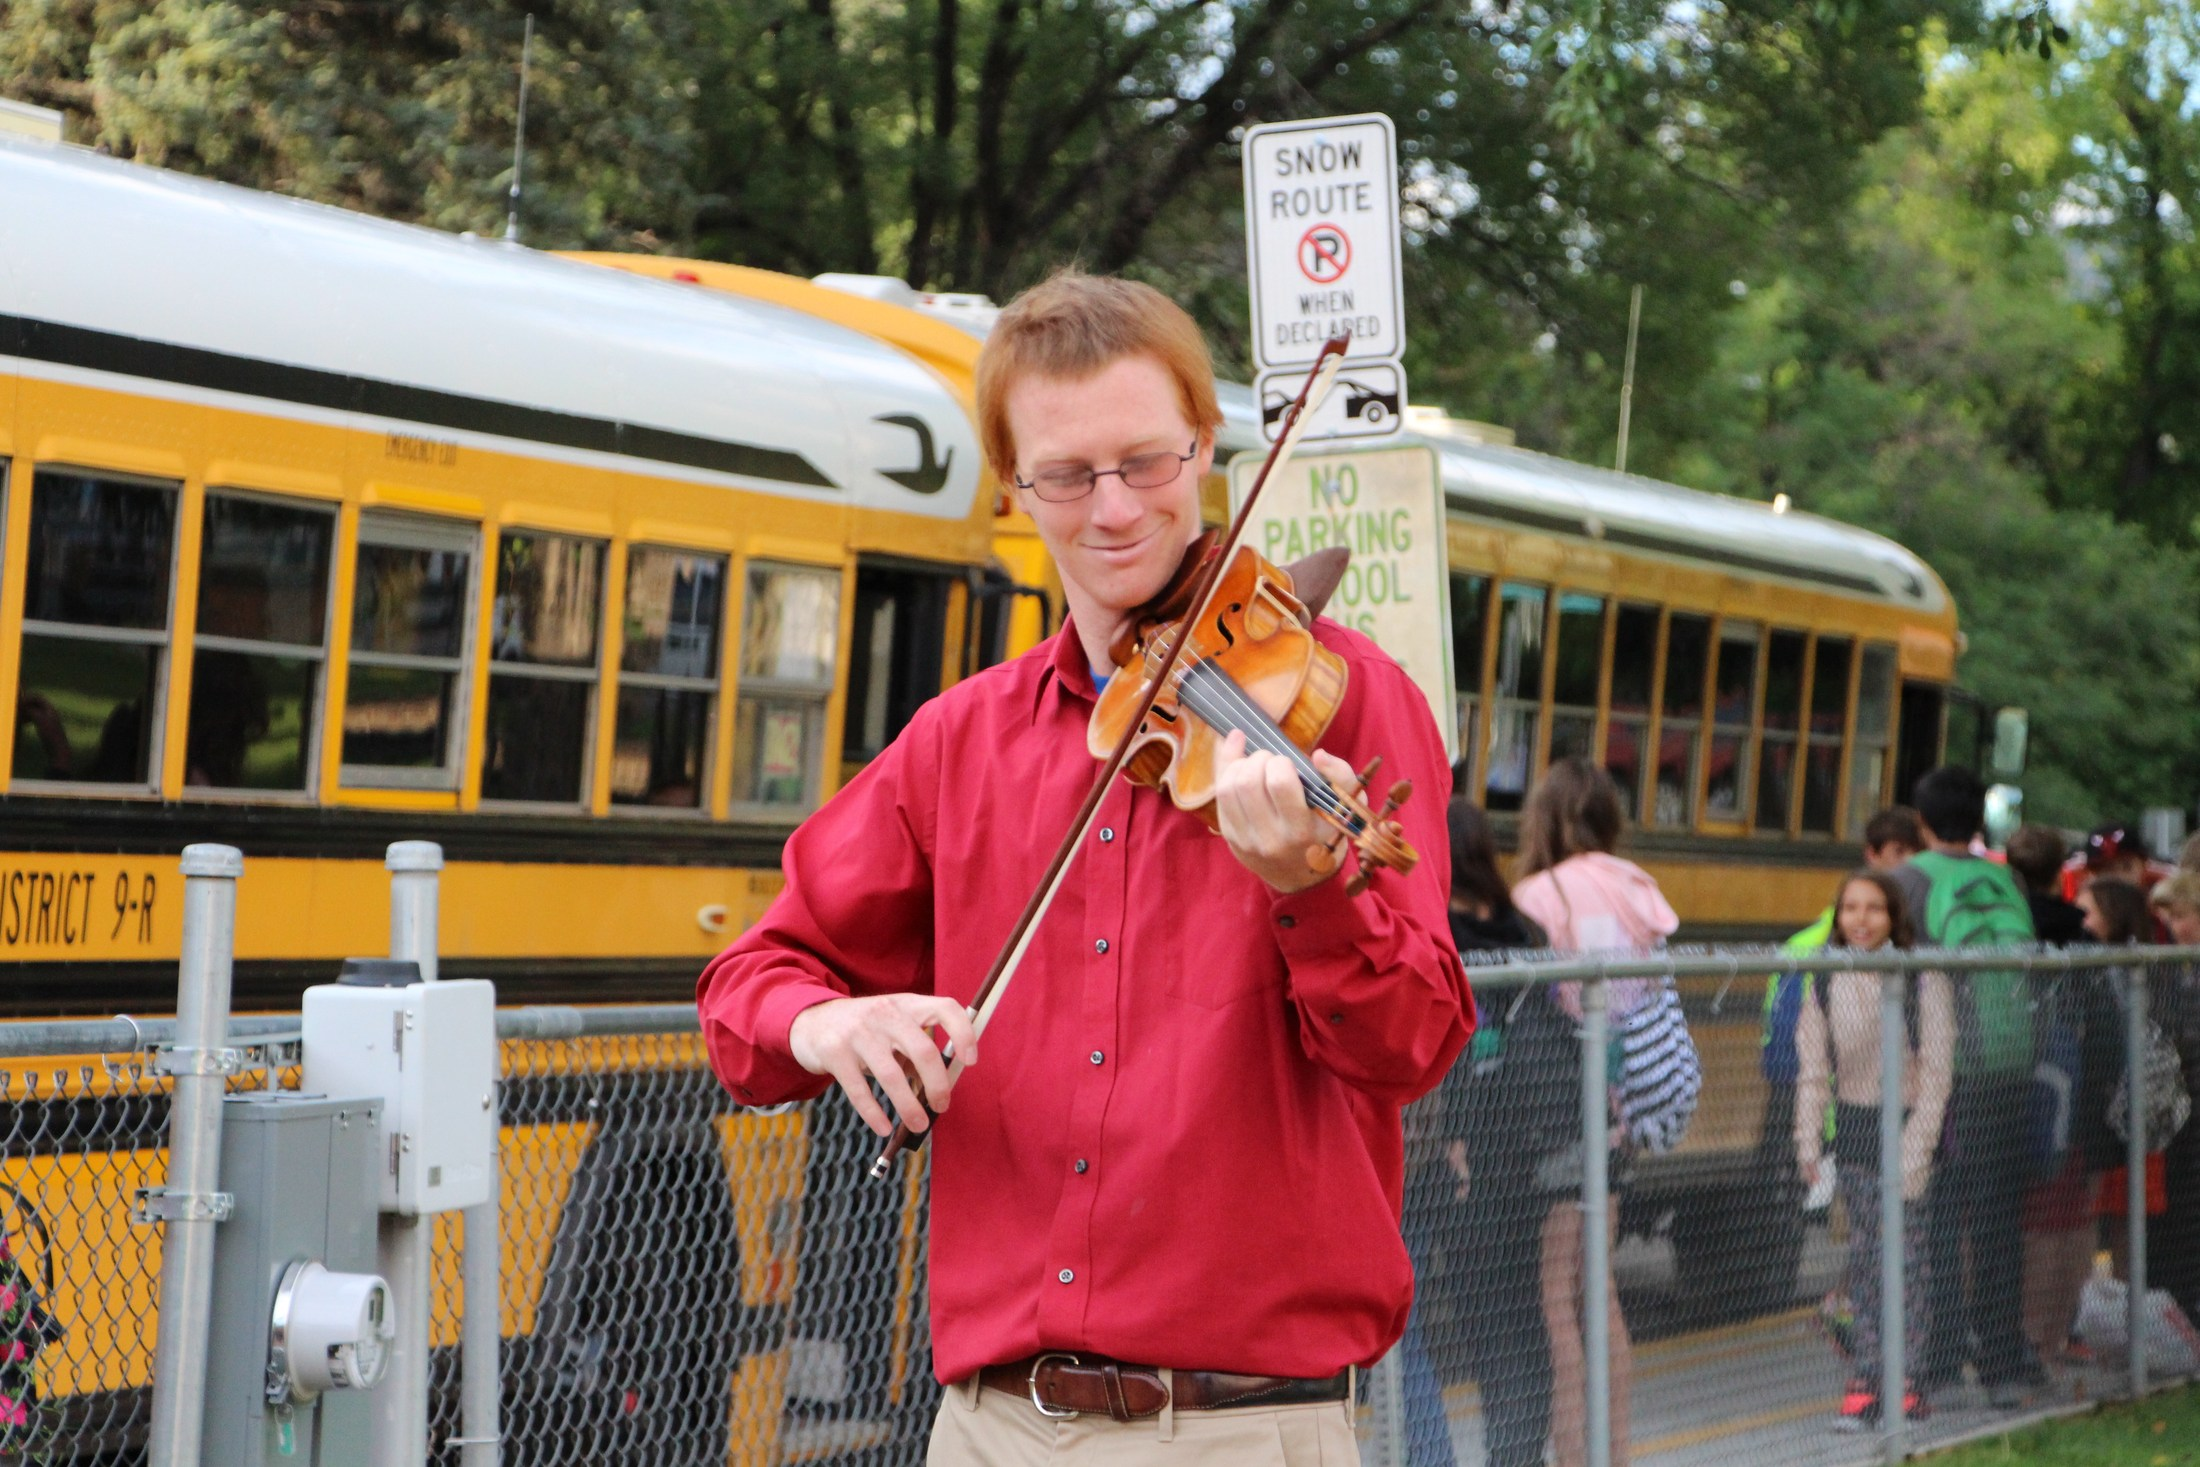 Rusty Charpentier plays violin for students arriving at the first day of school.